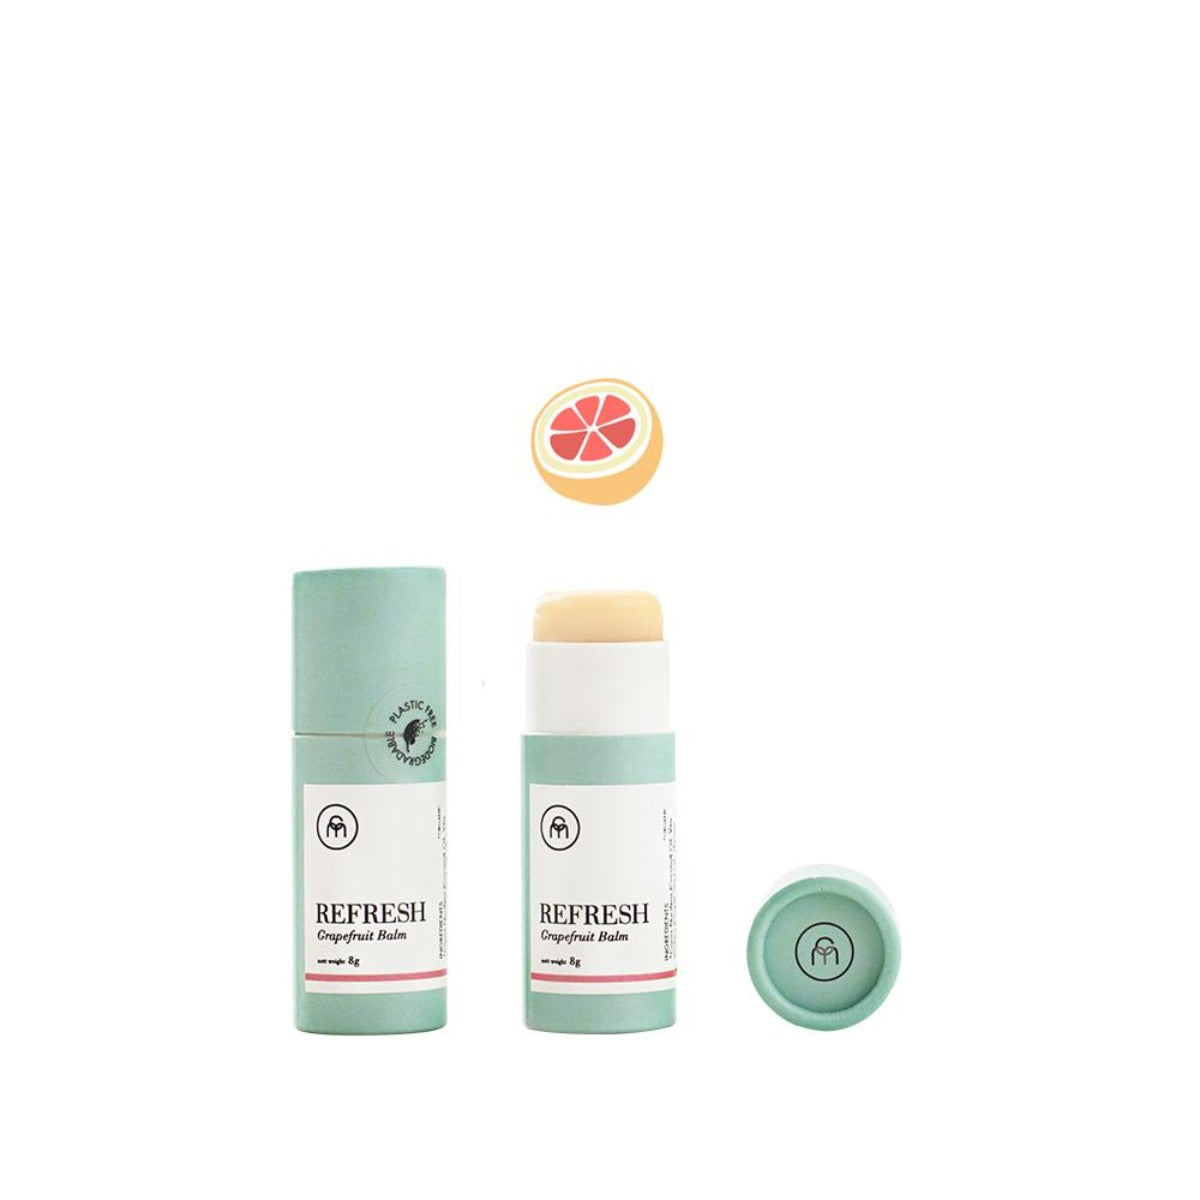 REFRESH Coconut oil lip balm